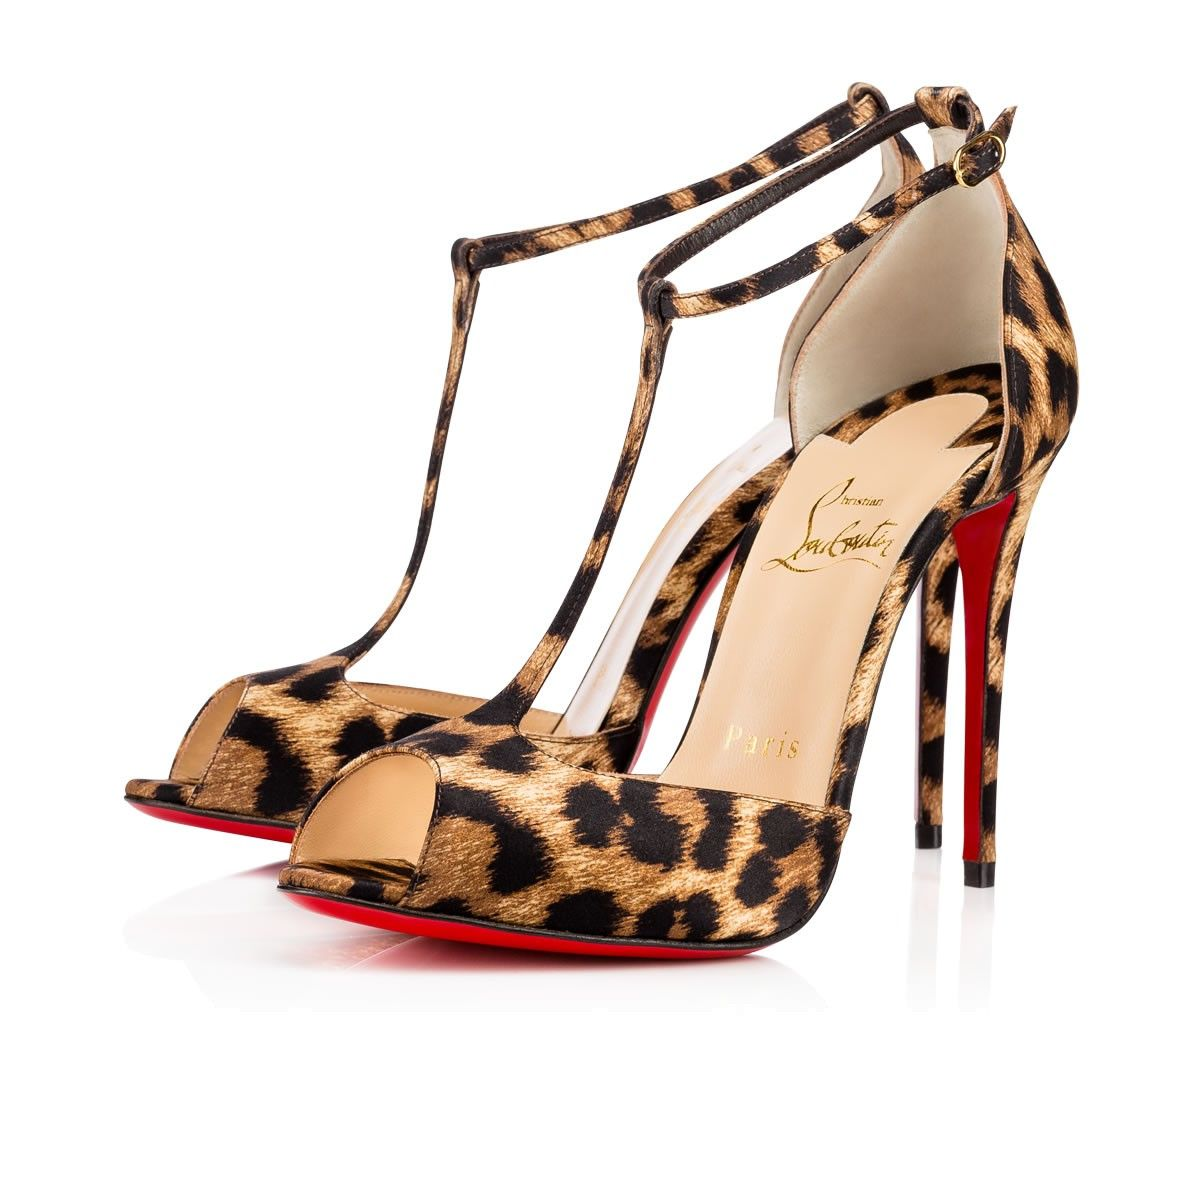 73845a0b7d03 CHRISTIAN LOUBOUTIN Senora 100 Brown Leopard Satin - Women Shoes - Christian  Louboutin.  christianlouboutin  shoes